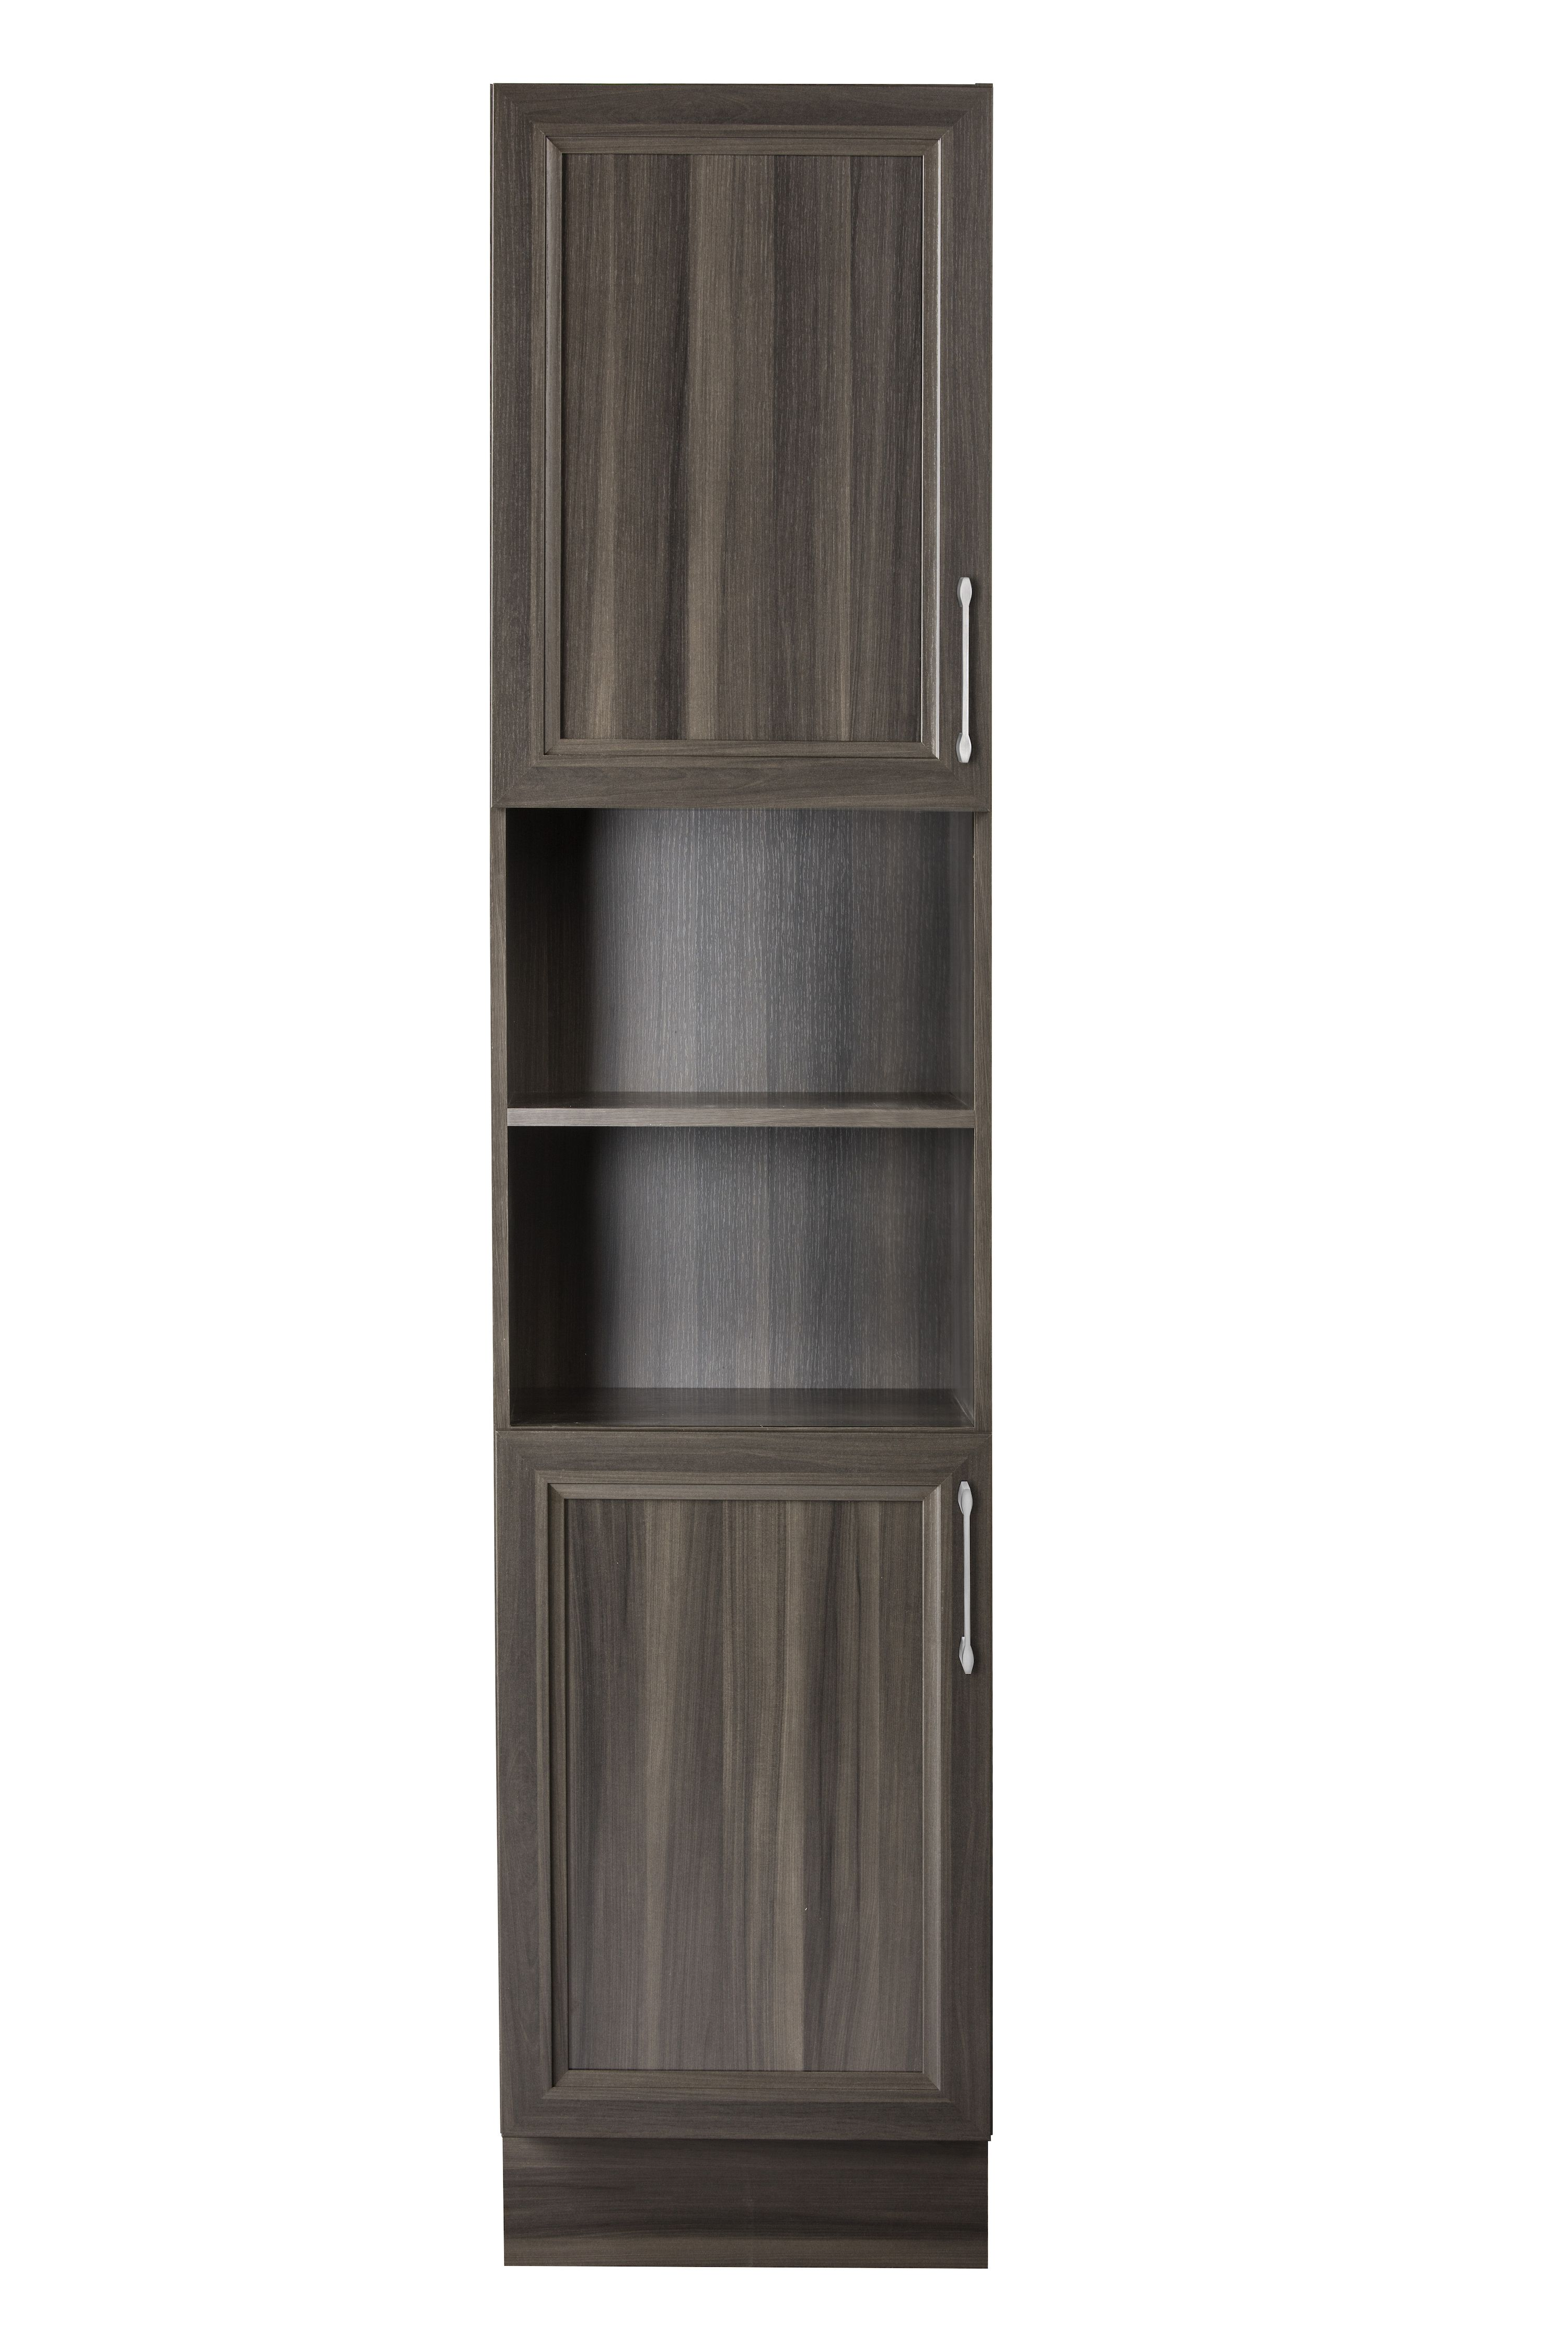 COTTAGE COLLECTION Linen Cabinet In ZAMBUCCA @Home Hardware Stores Limited  #bathroom #vanity #